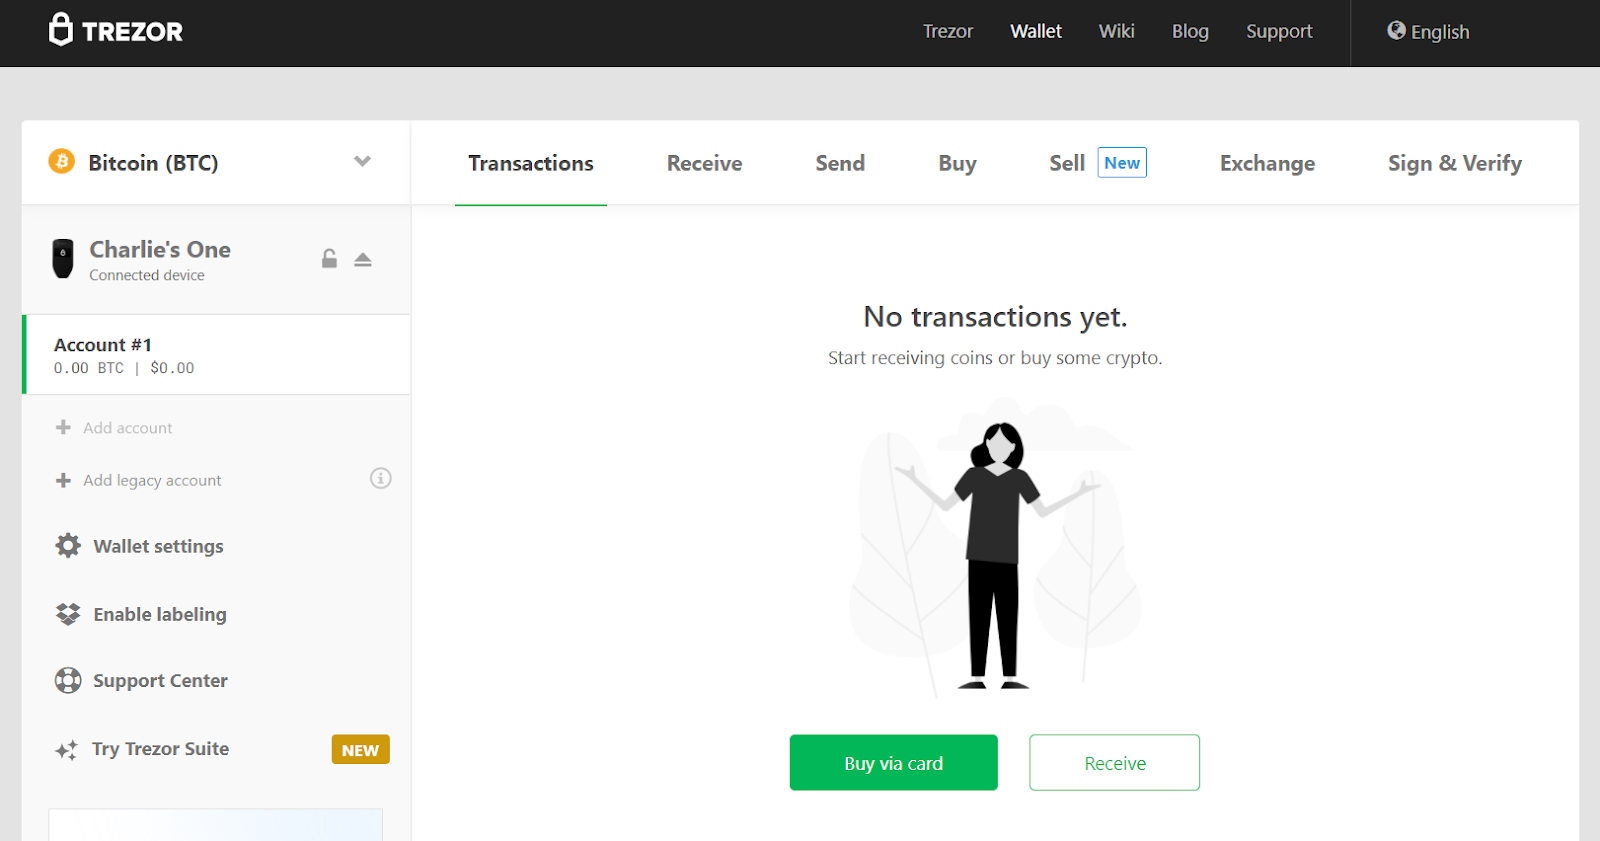 Screenshot on showcasing on how to receive crypto on the Trezor Model T.